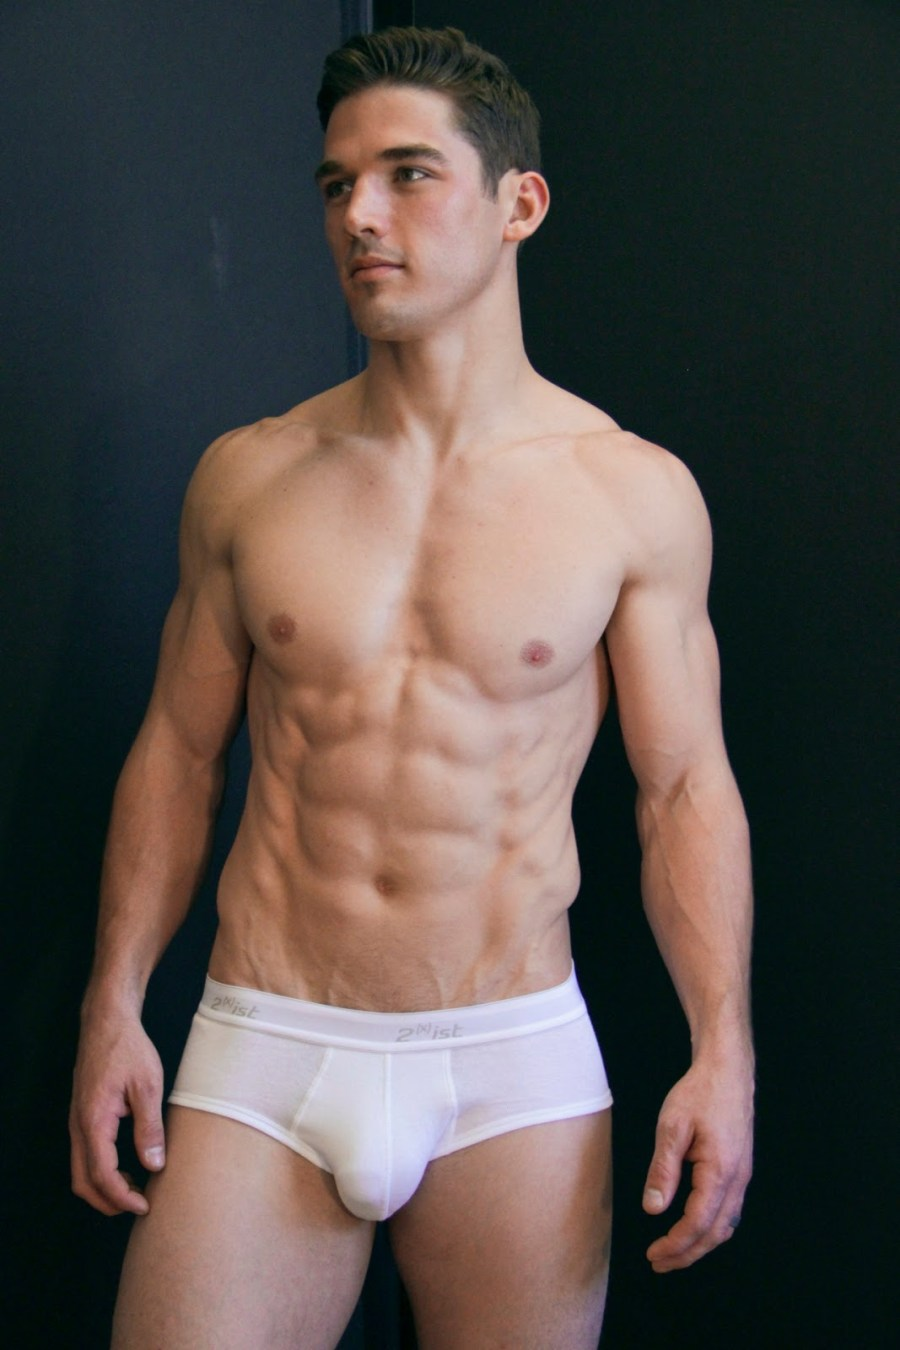 A much leaner Kerry Degman stops by the studio of photographer Shameer Khan for a fresh portrait session.